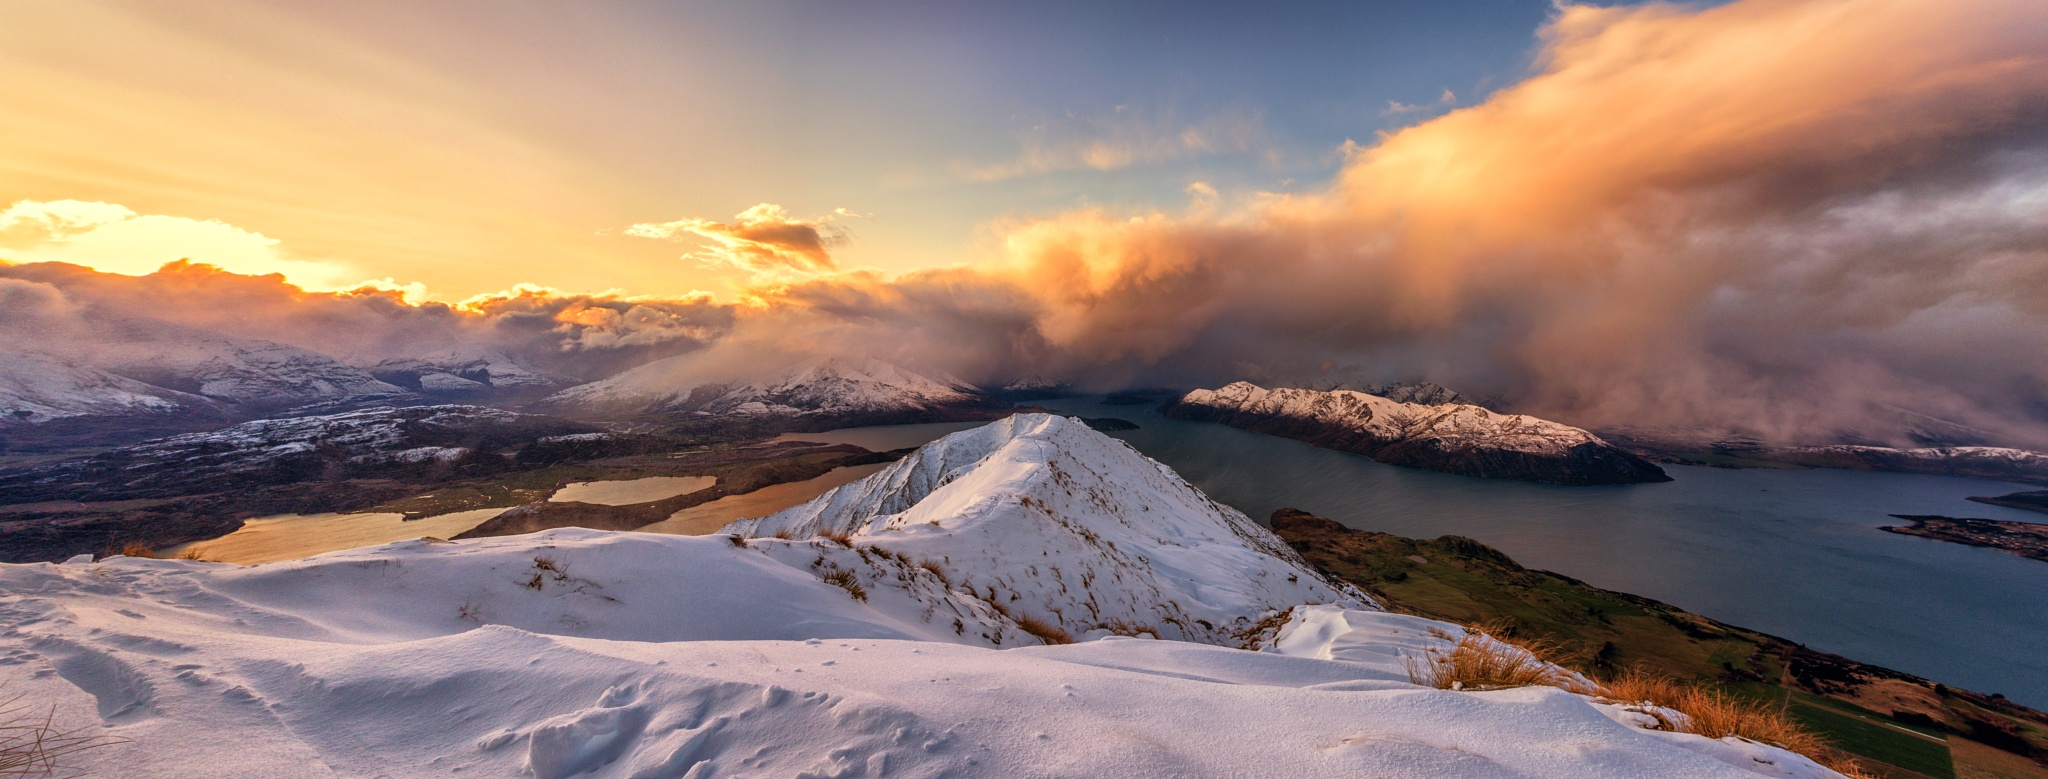 On Top of the World by Mark Macdonald